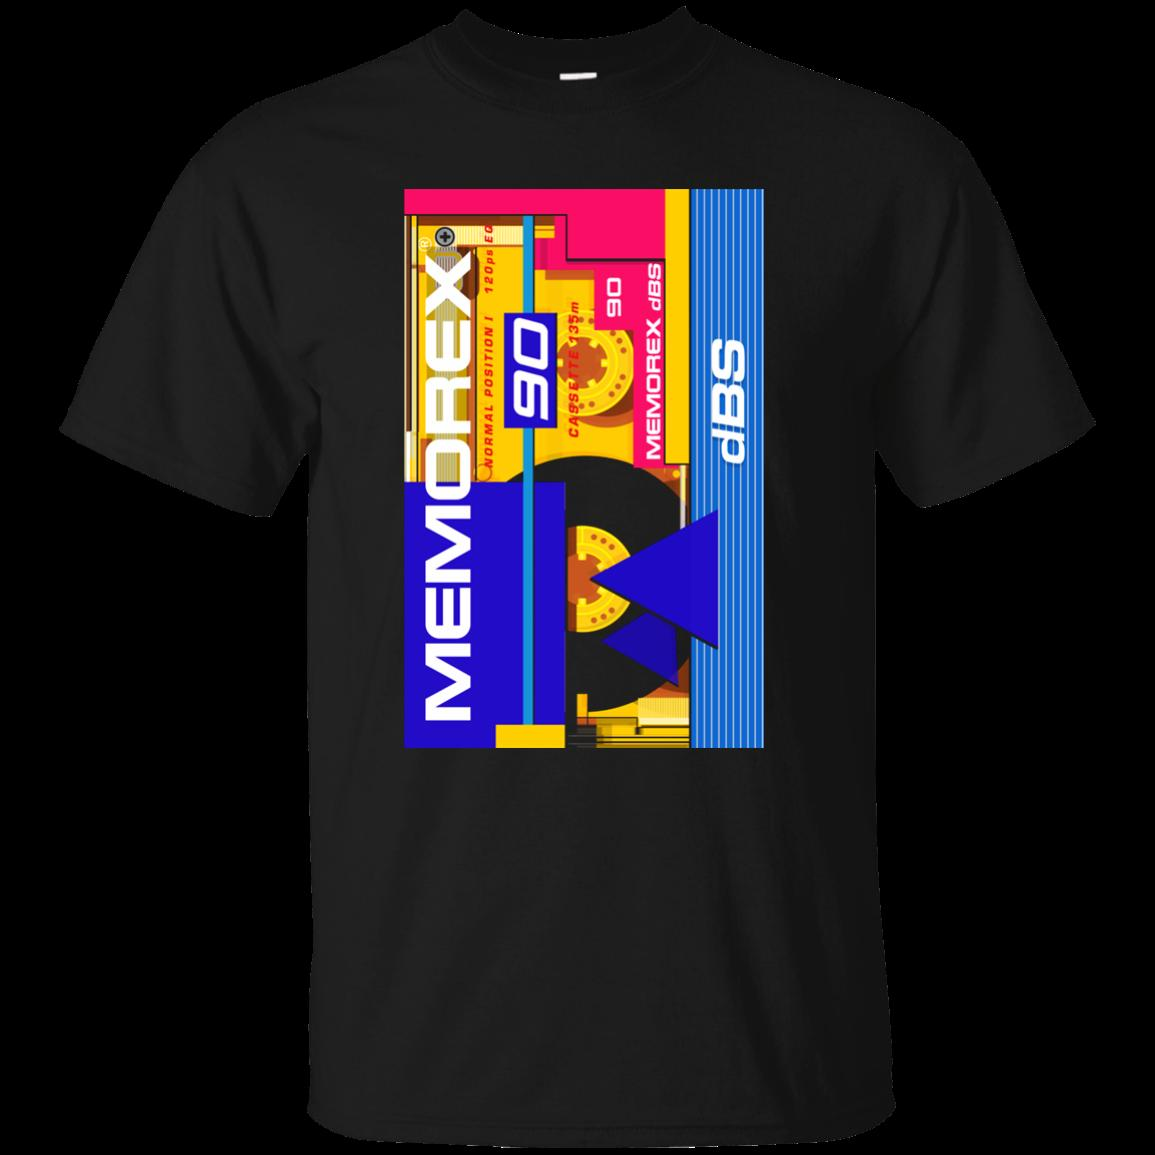 Cassette Memorex Dbs Retro Walkman Eighties Tape Mix Dj Old Schoo Cool Casual Pride T Shirt Men Business Tees From Designtshirts